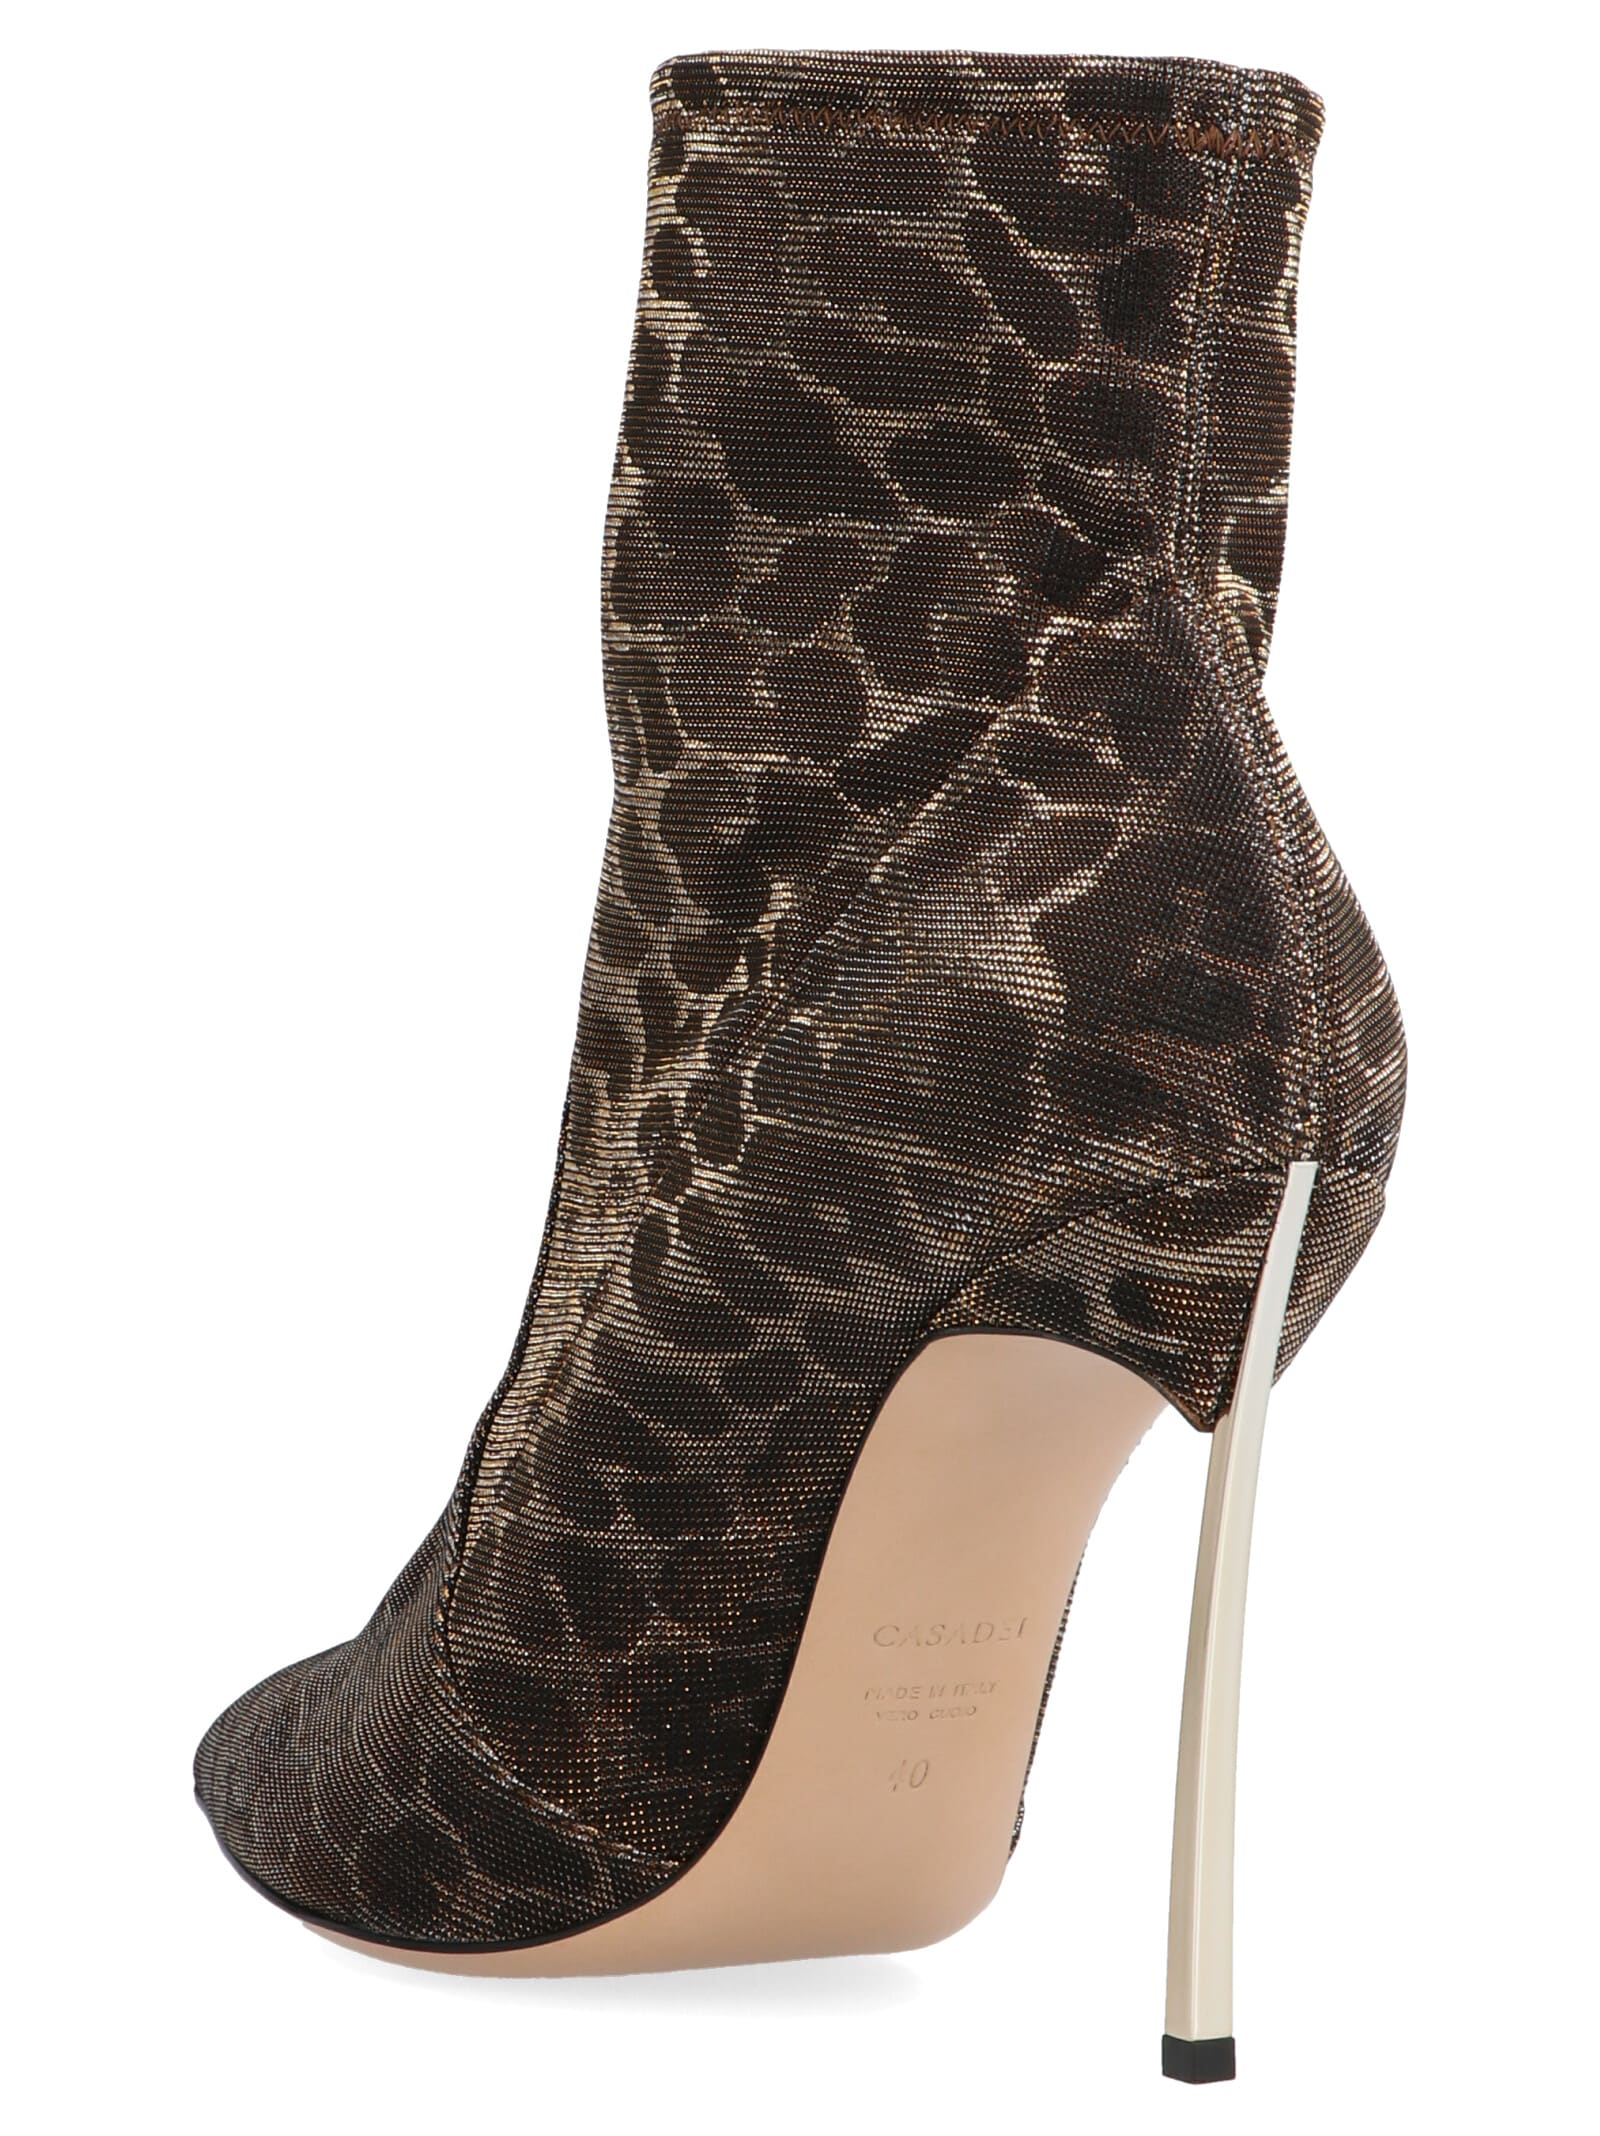 High Quality Casadei Shoes - Great Deals